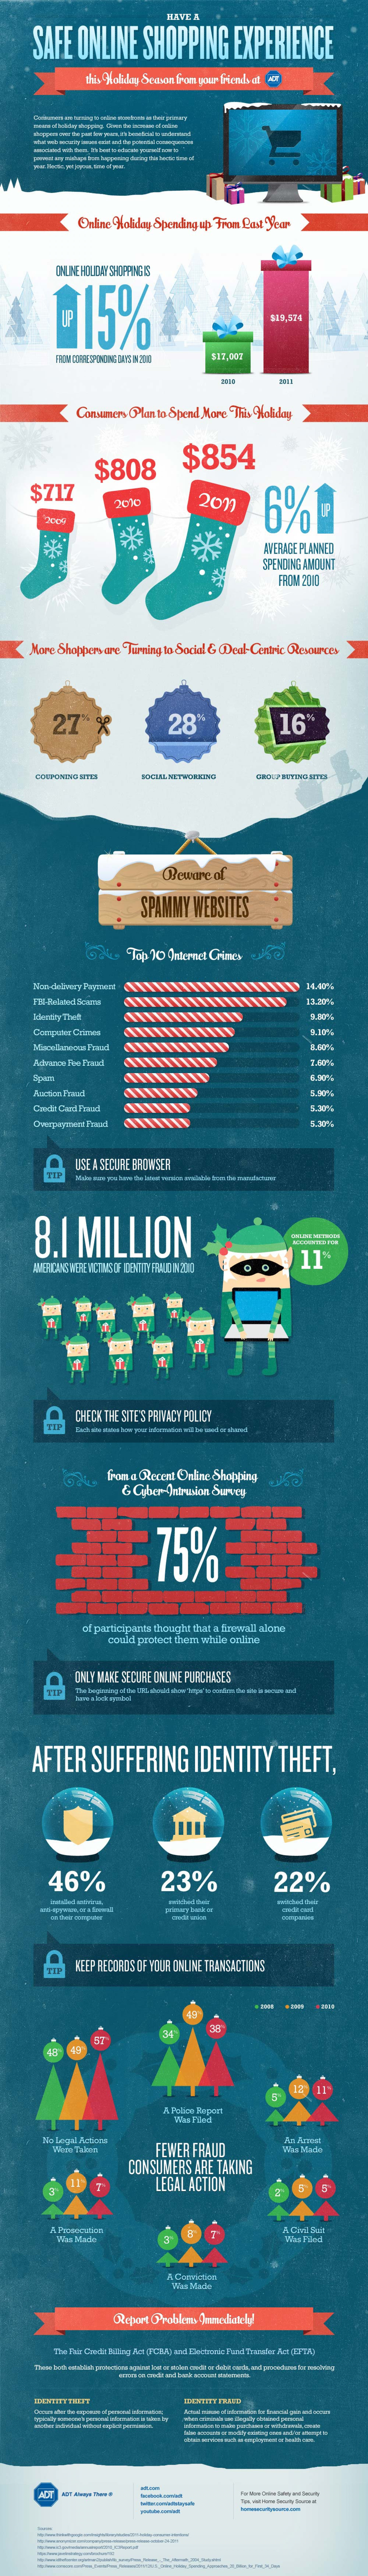 Online Security Tips for Last Minute Holiday Shoppers 2011 Infographic